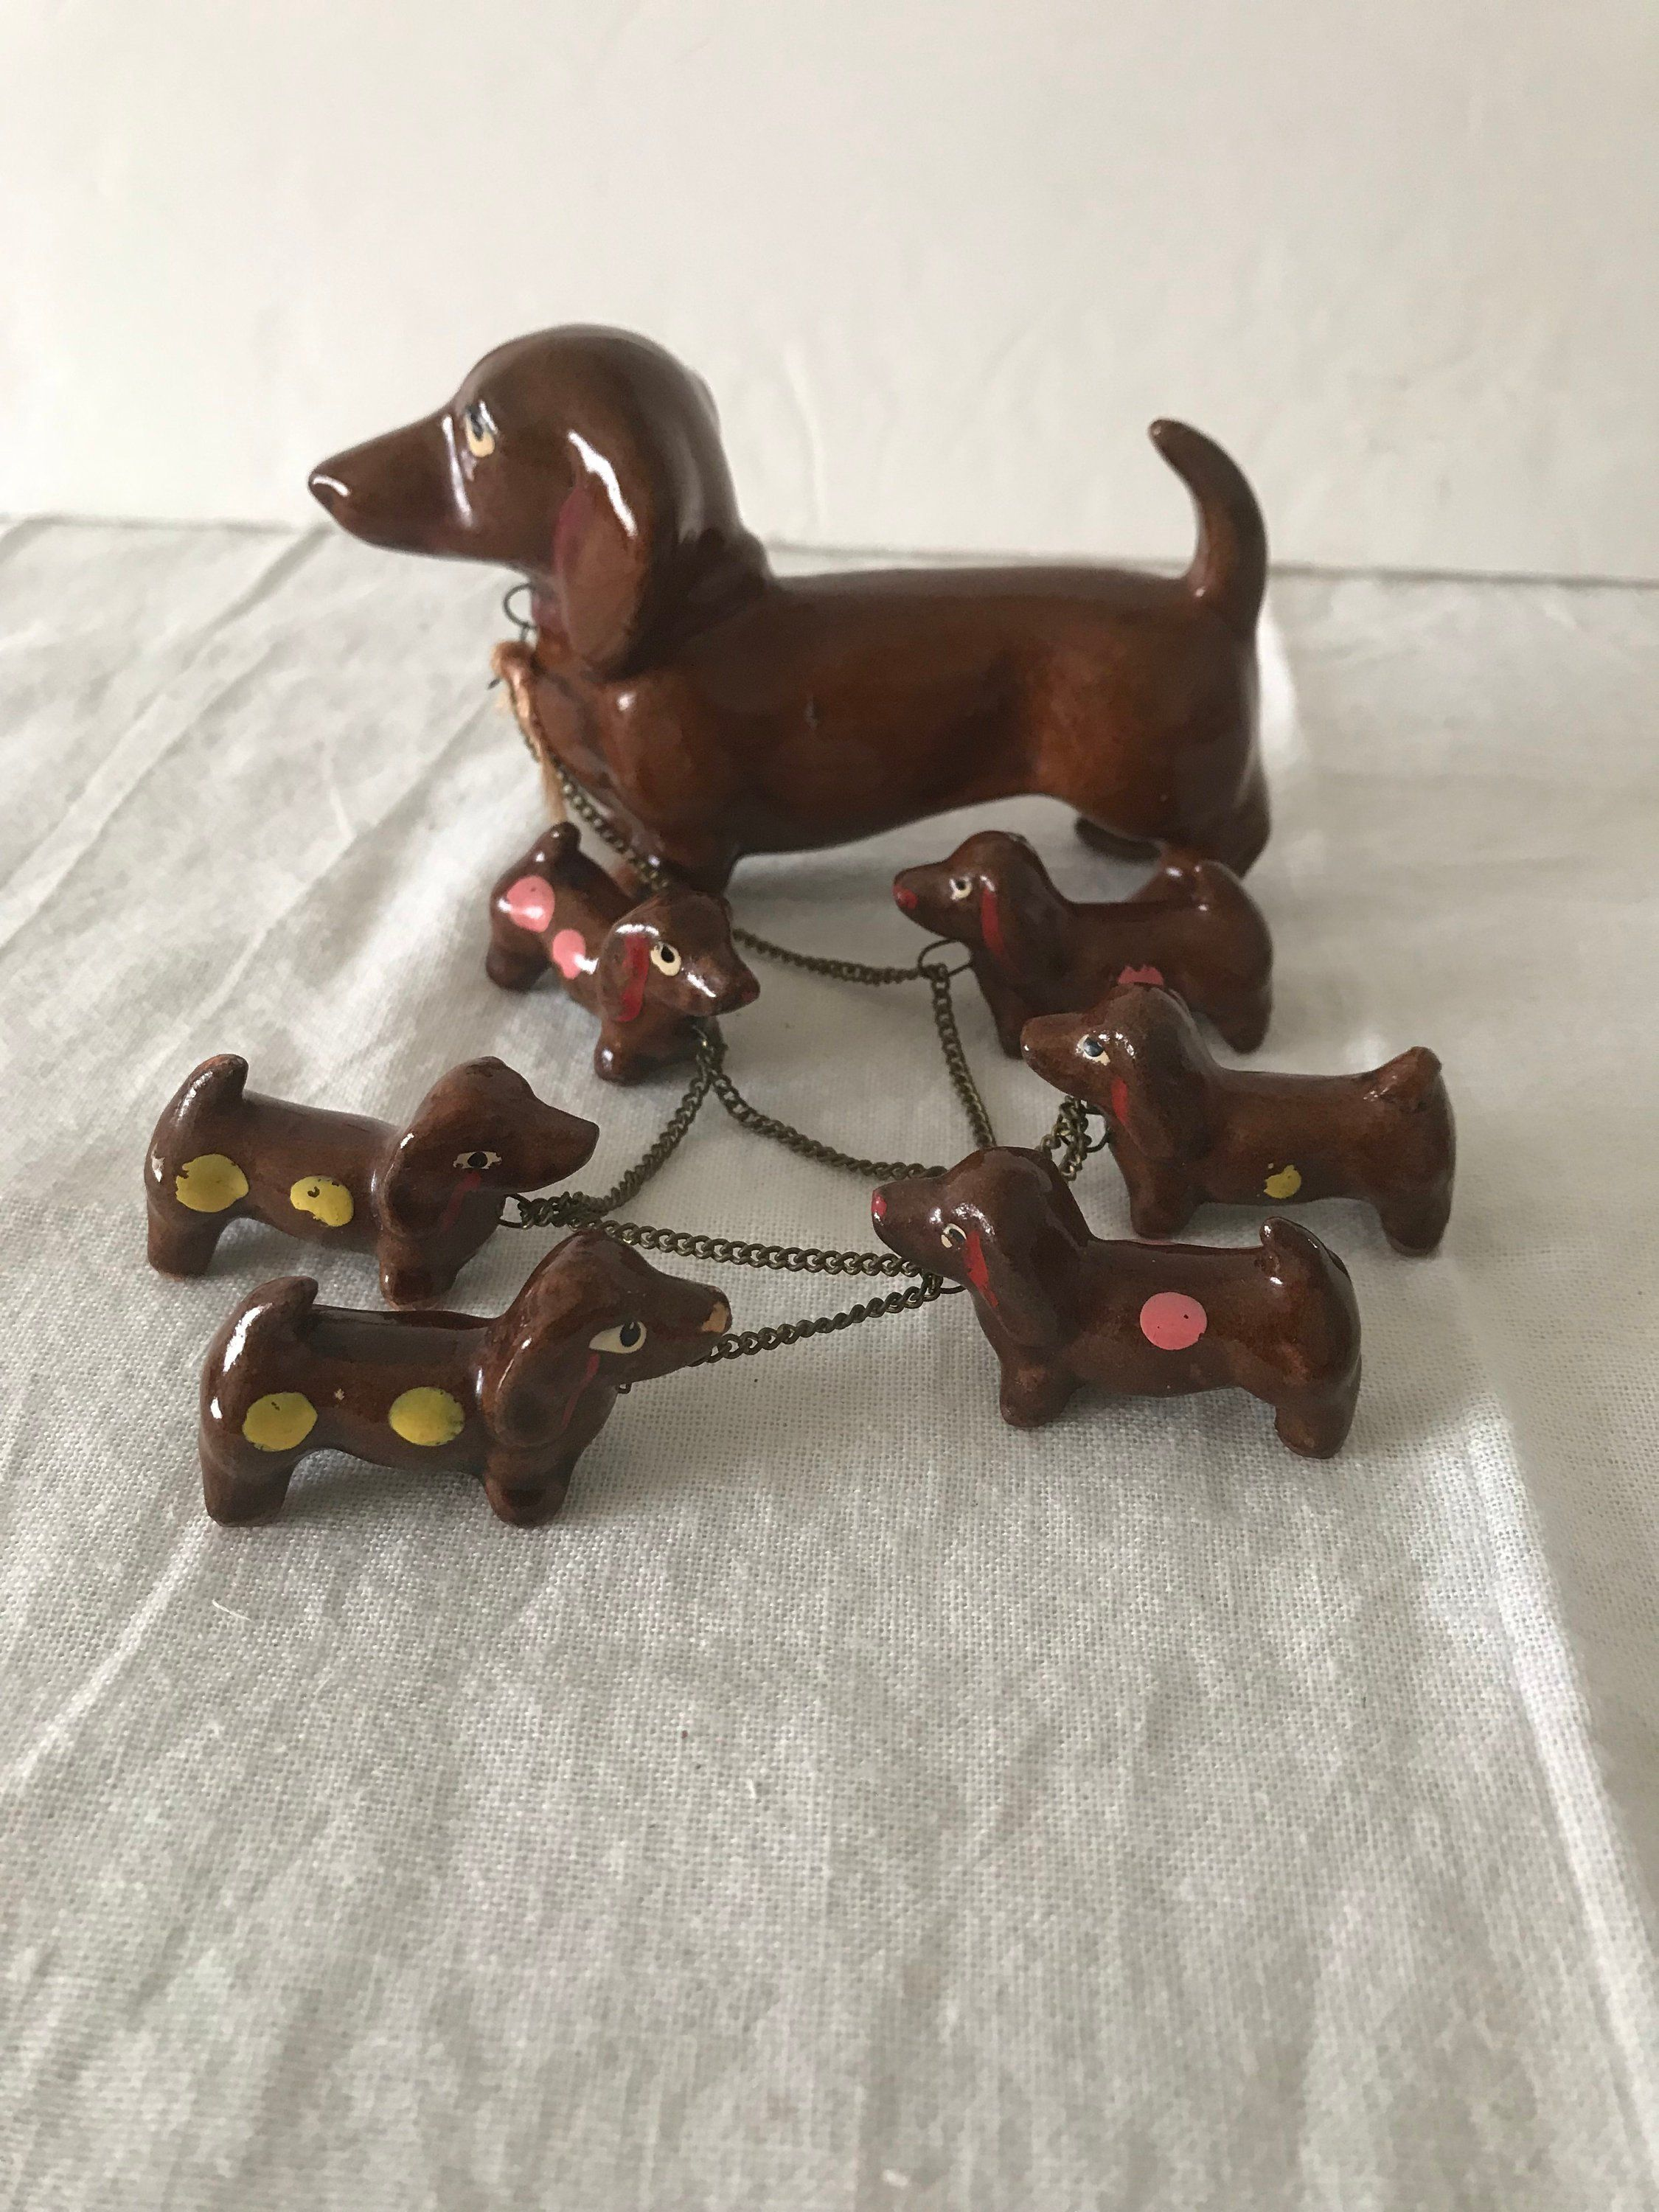 Free Ship Vintage Mother Dachshund Dog Figurine Chained With 6